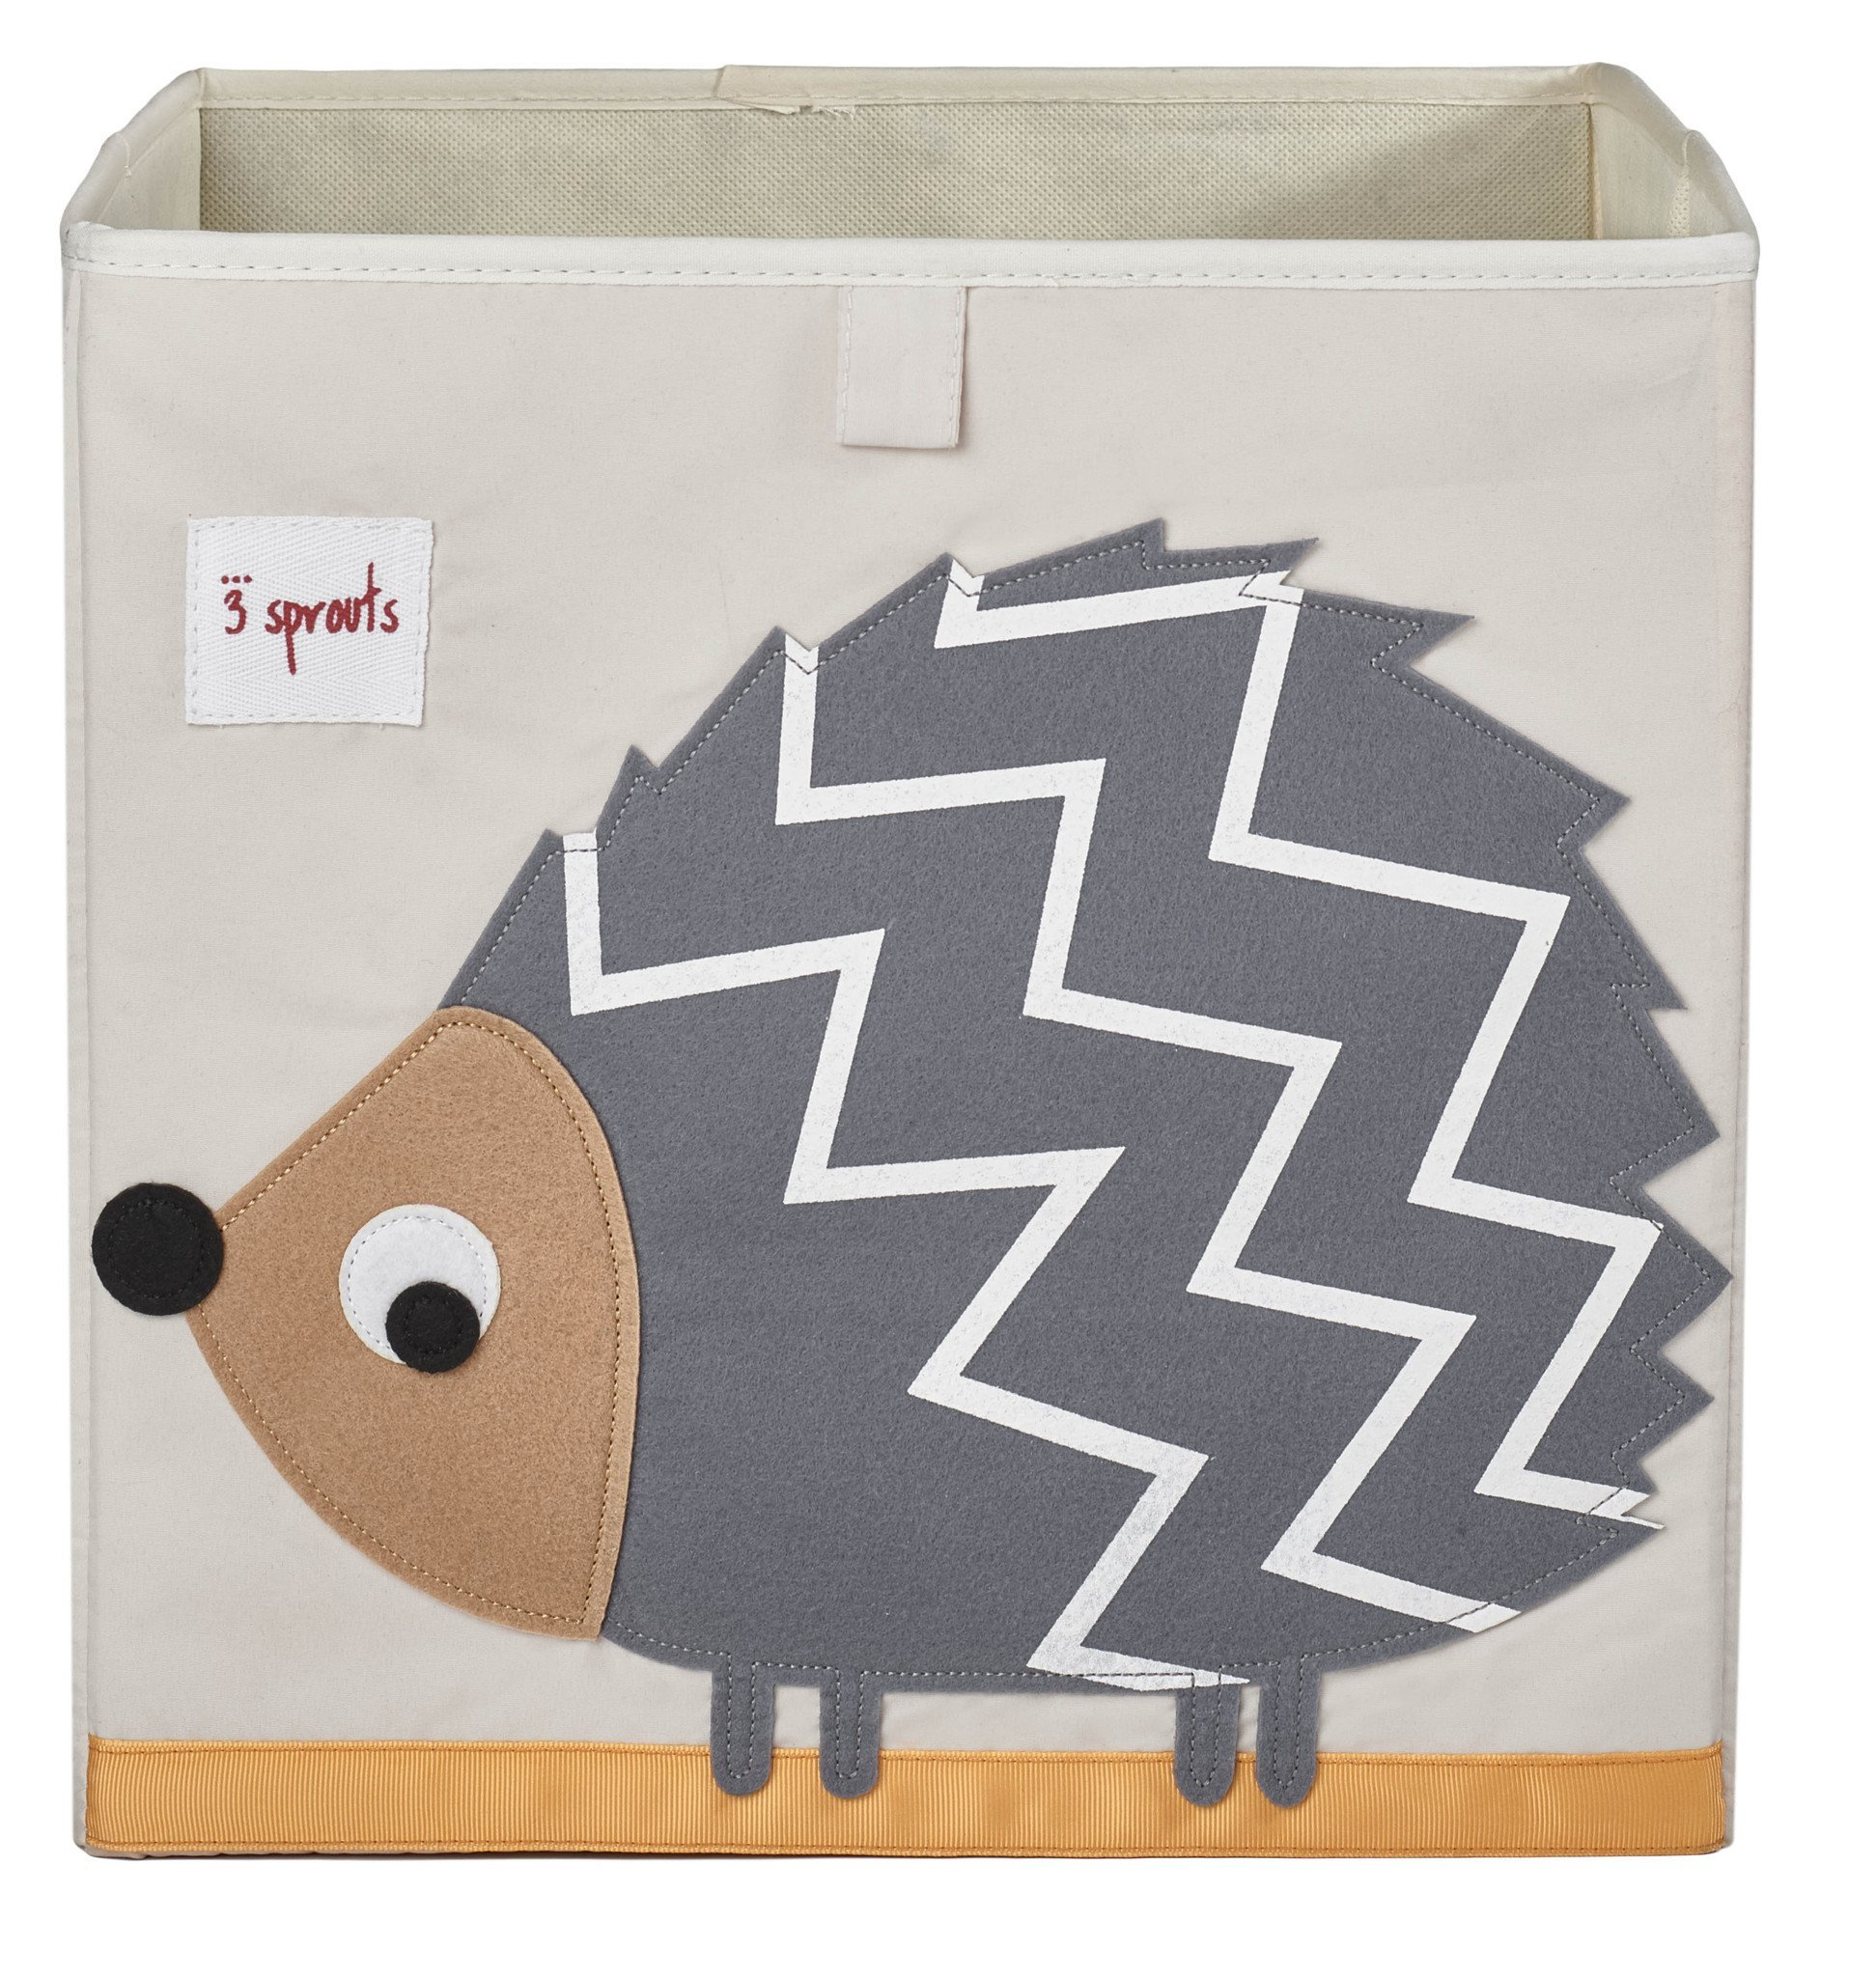 Hedgehog_Storage_Box_crop_311936c1-3122-4292-8bd0-c5769d78d924_1024x1024@2x